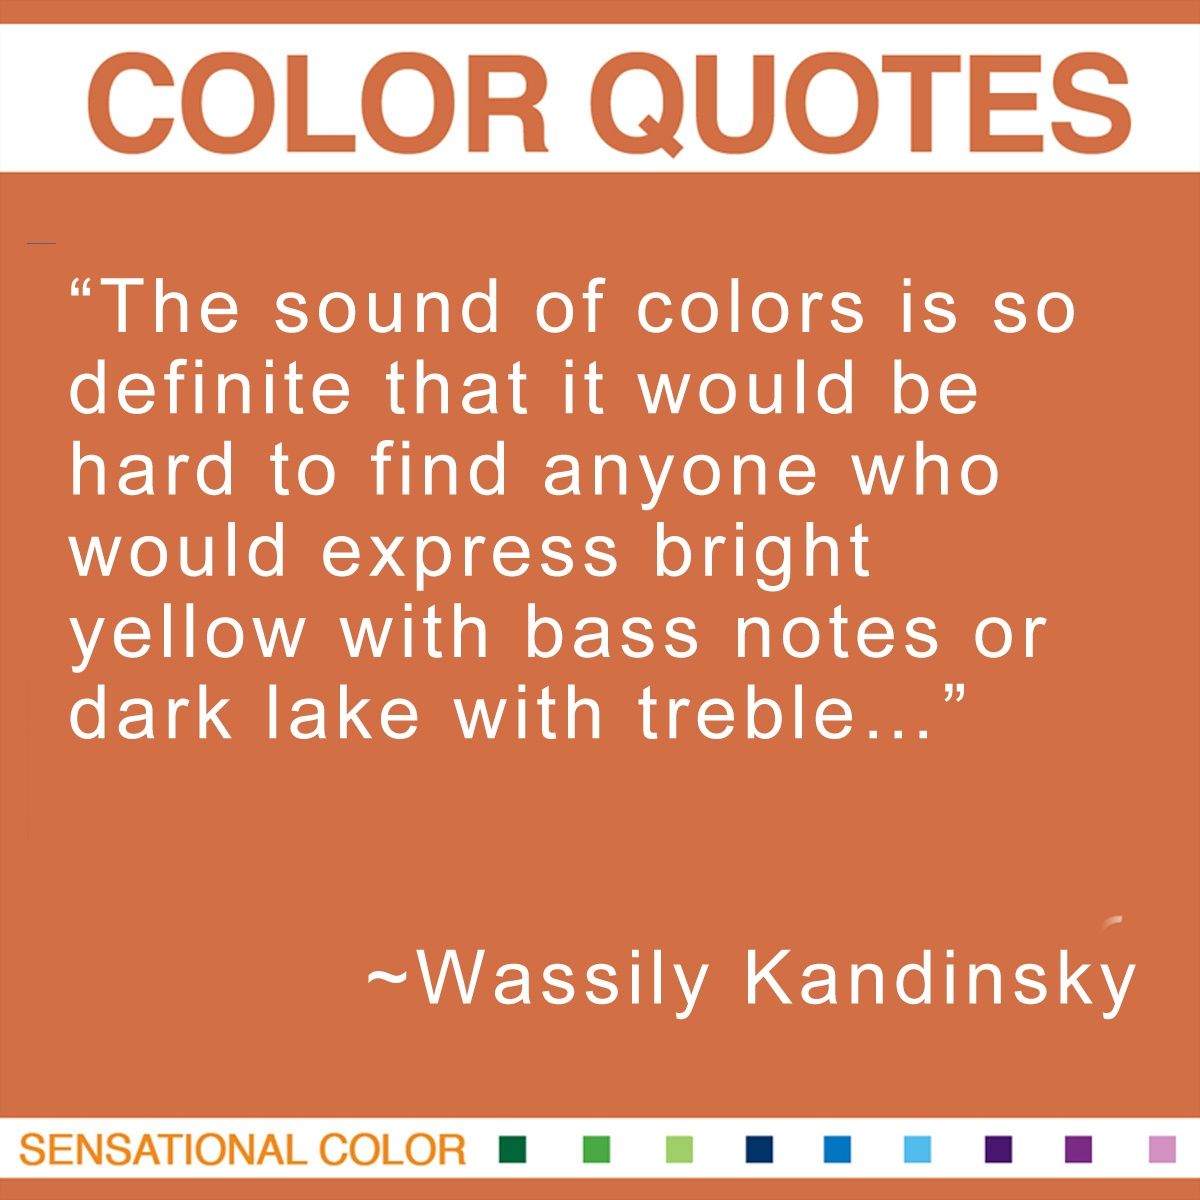 """The sound of colors is so definite that it would be hard to find anyone who would express bright yellow with bass notes or dark lake with treble…"" - Wassily Kandinsky"